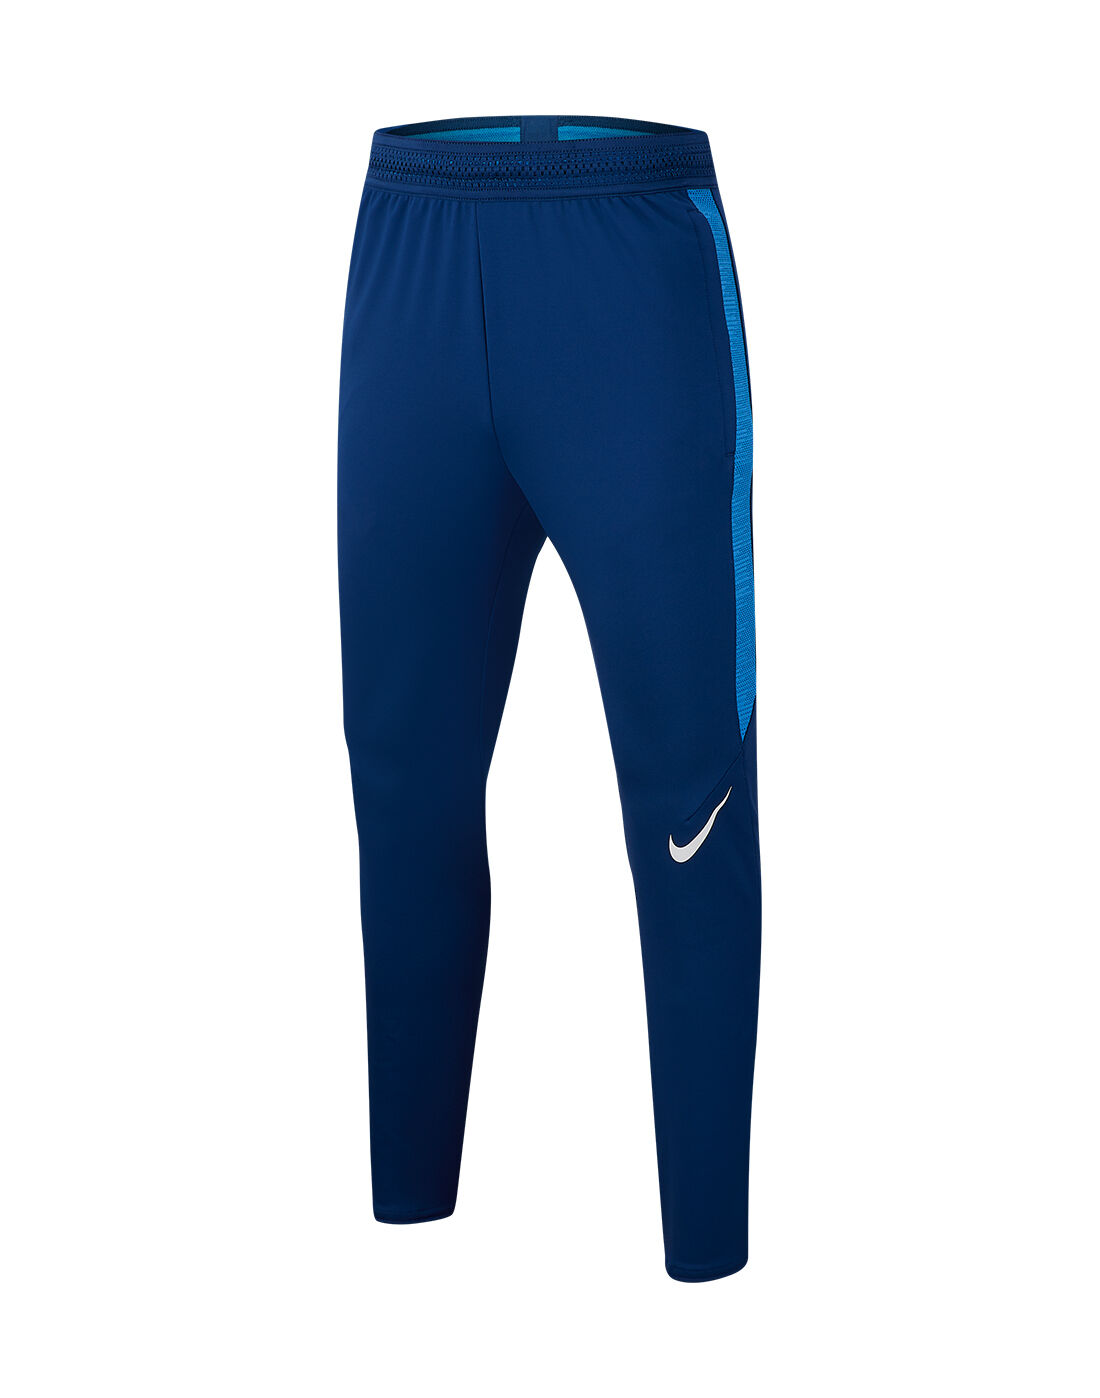 Boys Track Pants | Boys Shorts | Life Style Sports